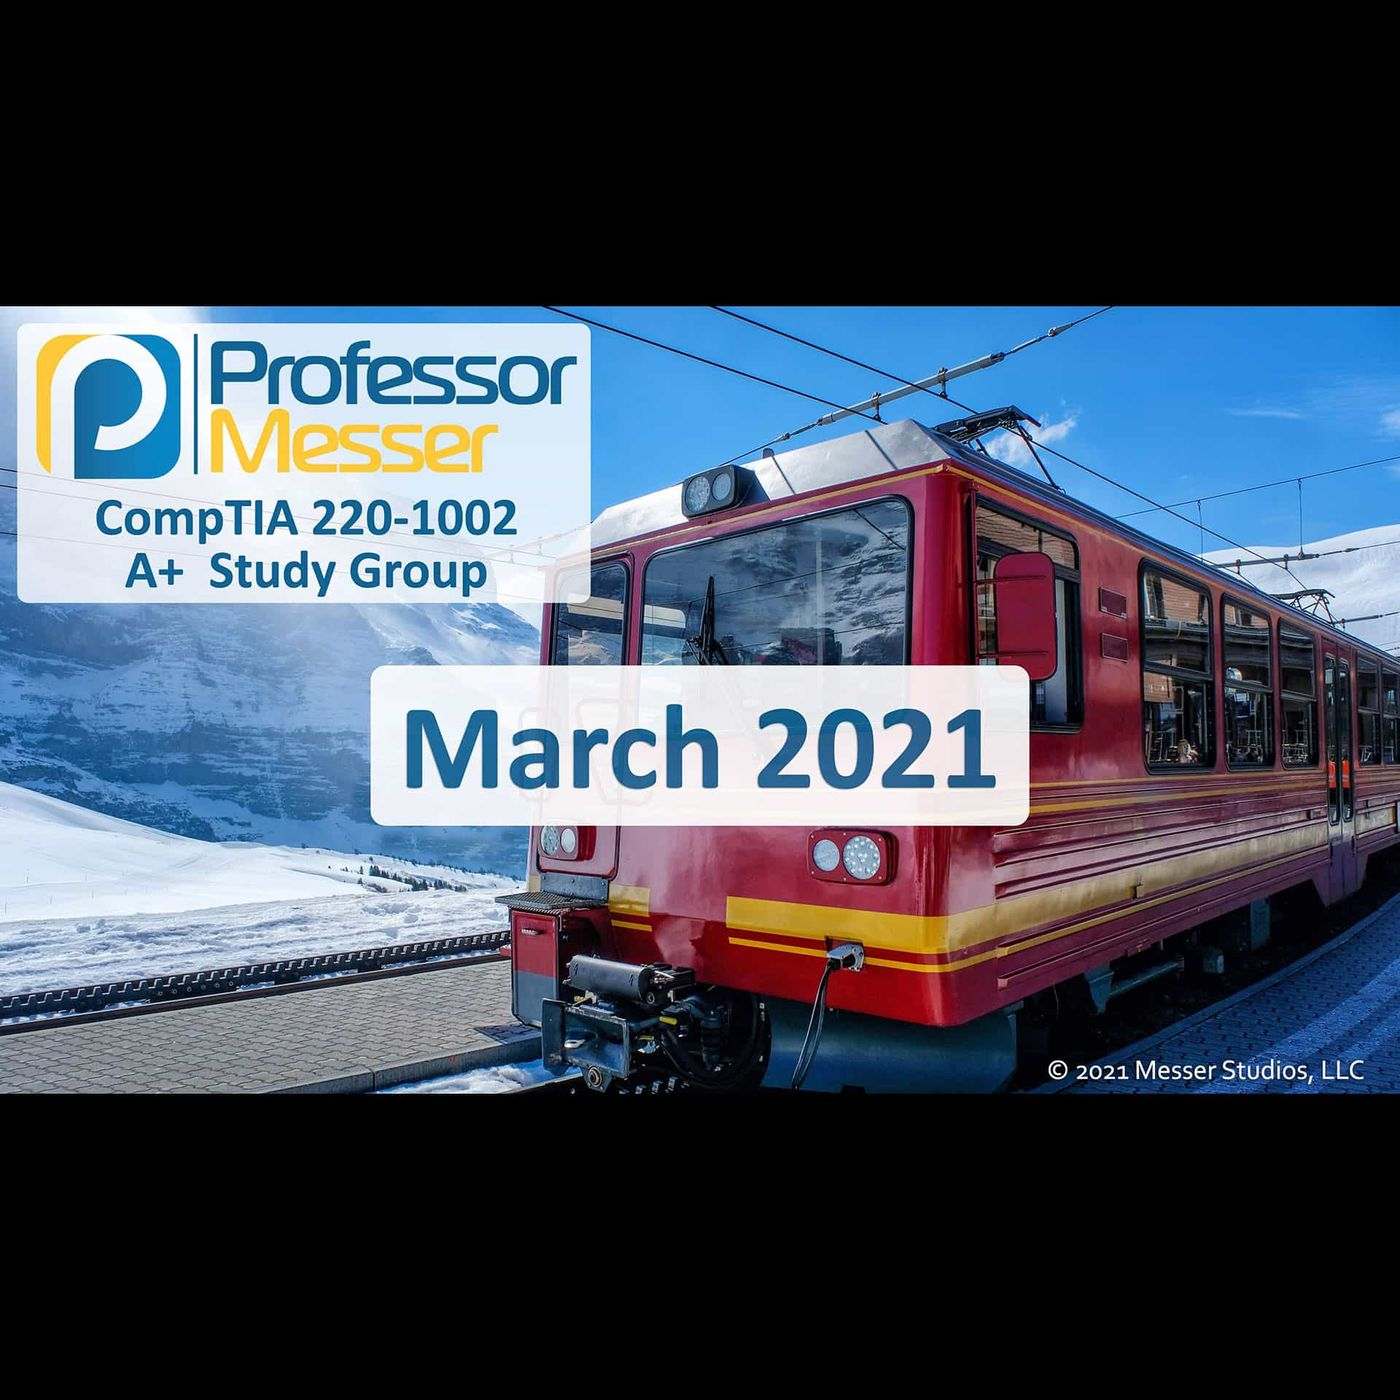 Professor Messer's CompTIA 220-1002 A+ Study Group After Show - March 2021